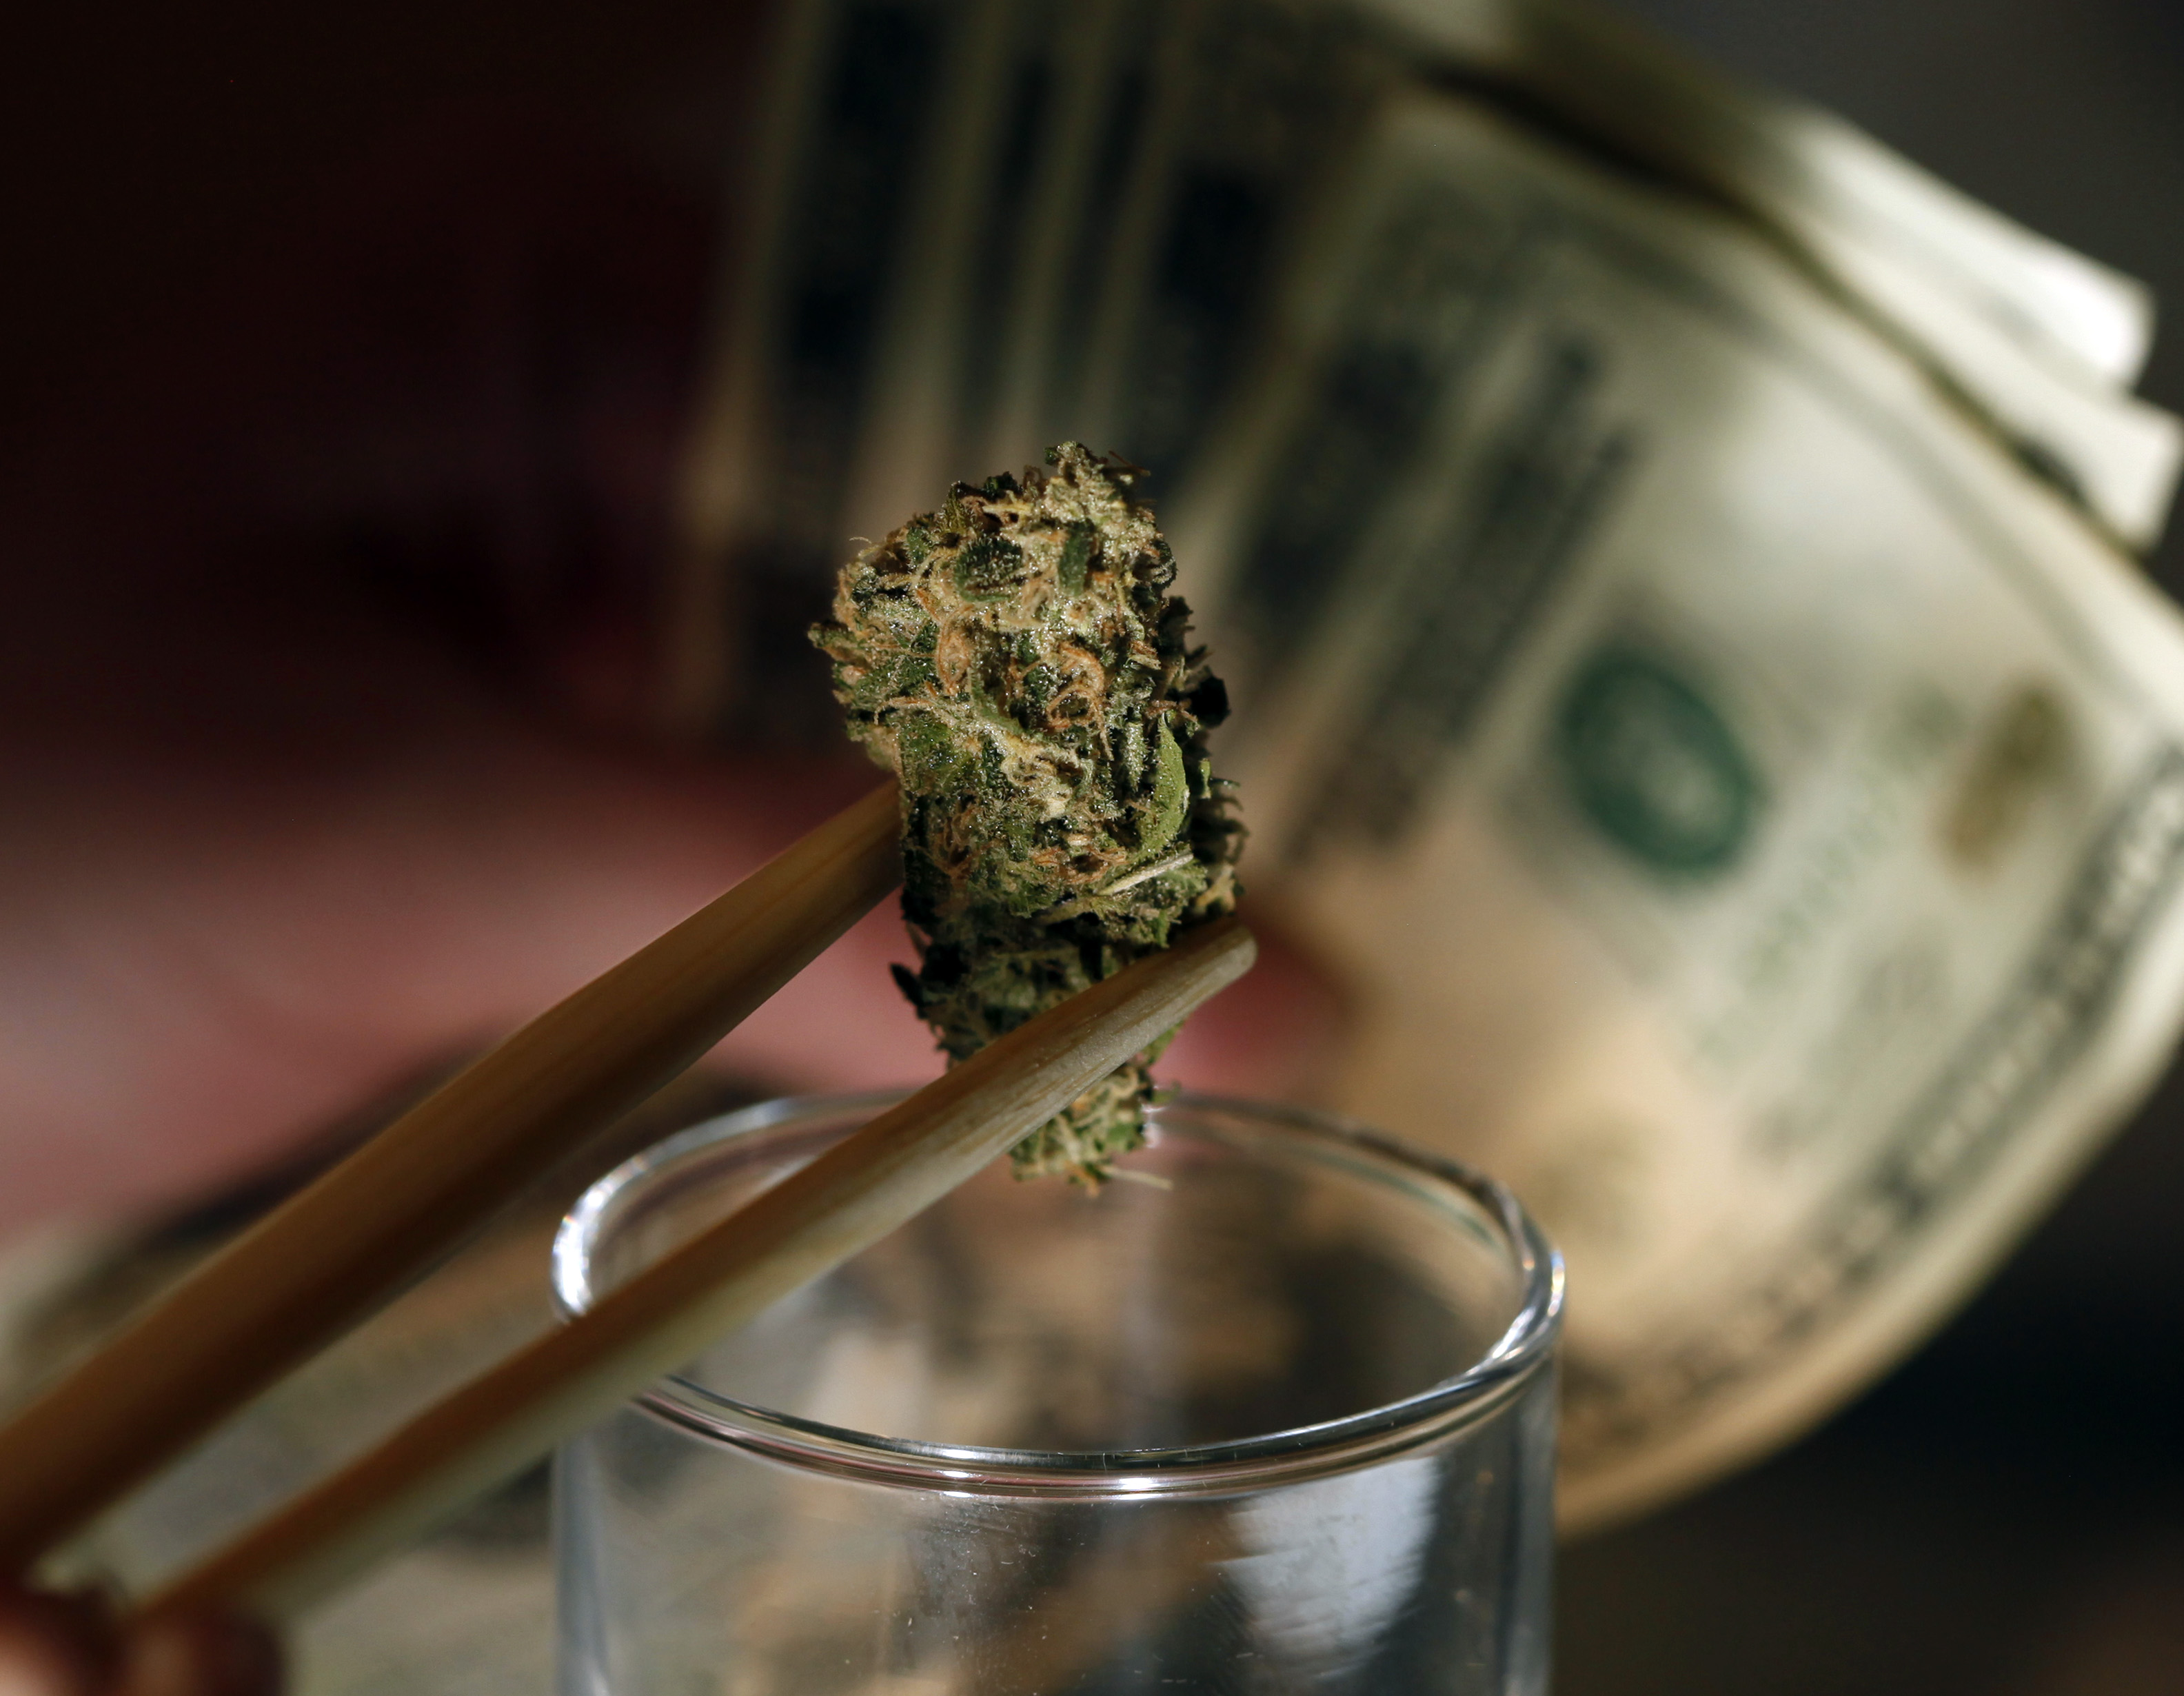 Where Does All The Marijuana Money Go? Colorado's Pot Taxes